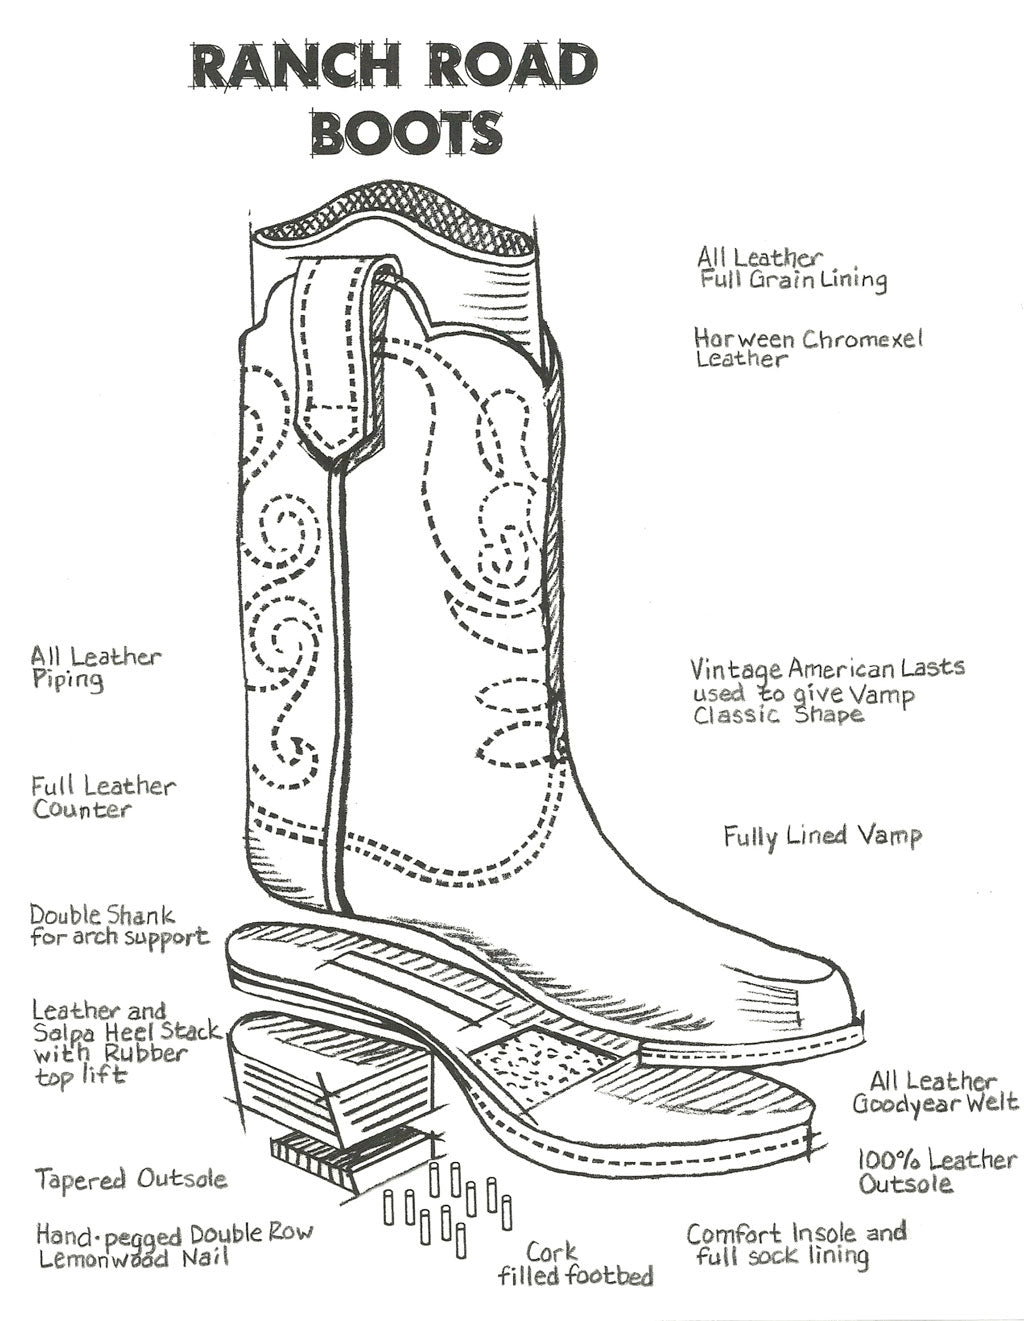 construction of a ranch road boot